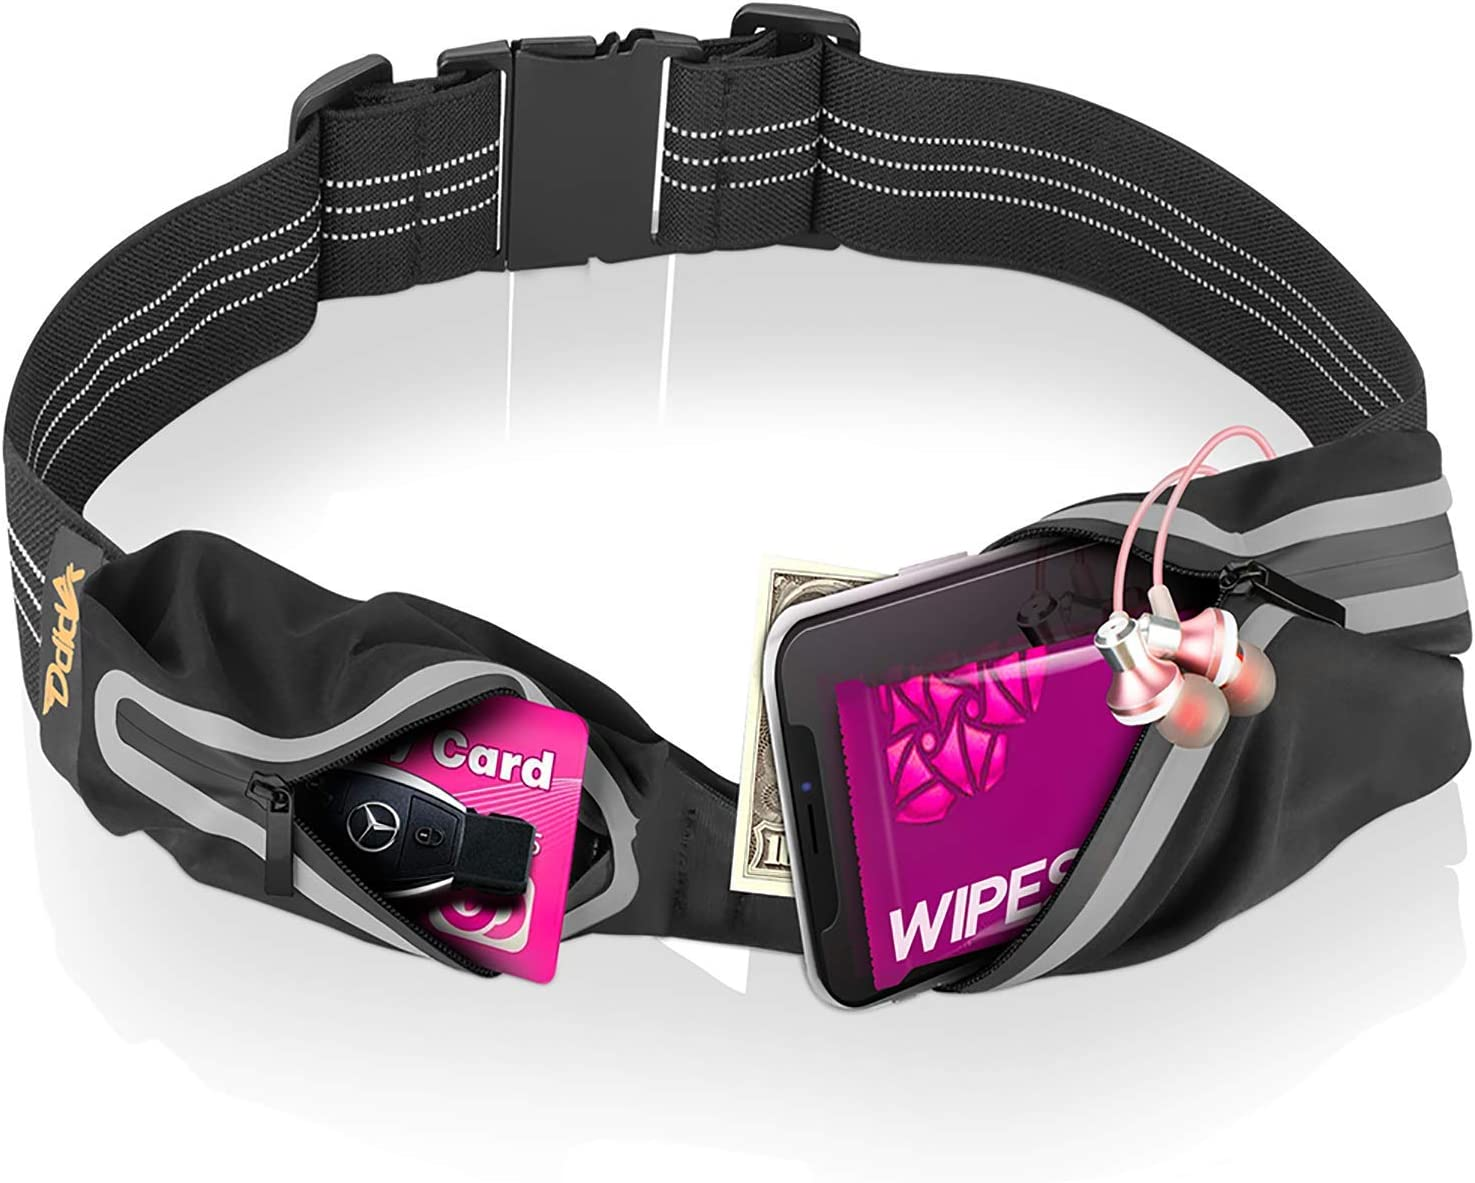 Ddida Slim Running Belt Very popular Water Runners Fanny Courier shipping free Pack Resistant